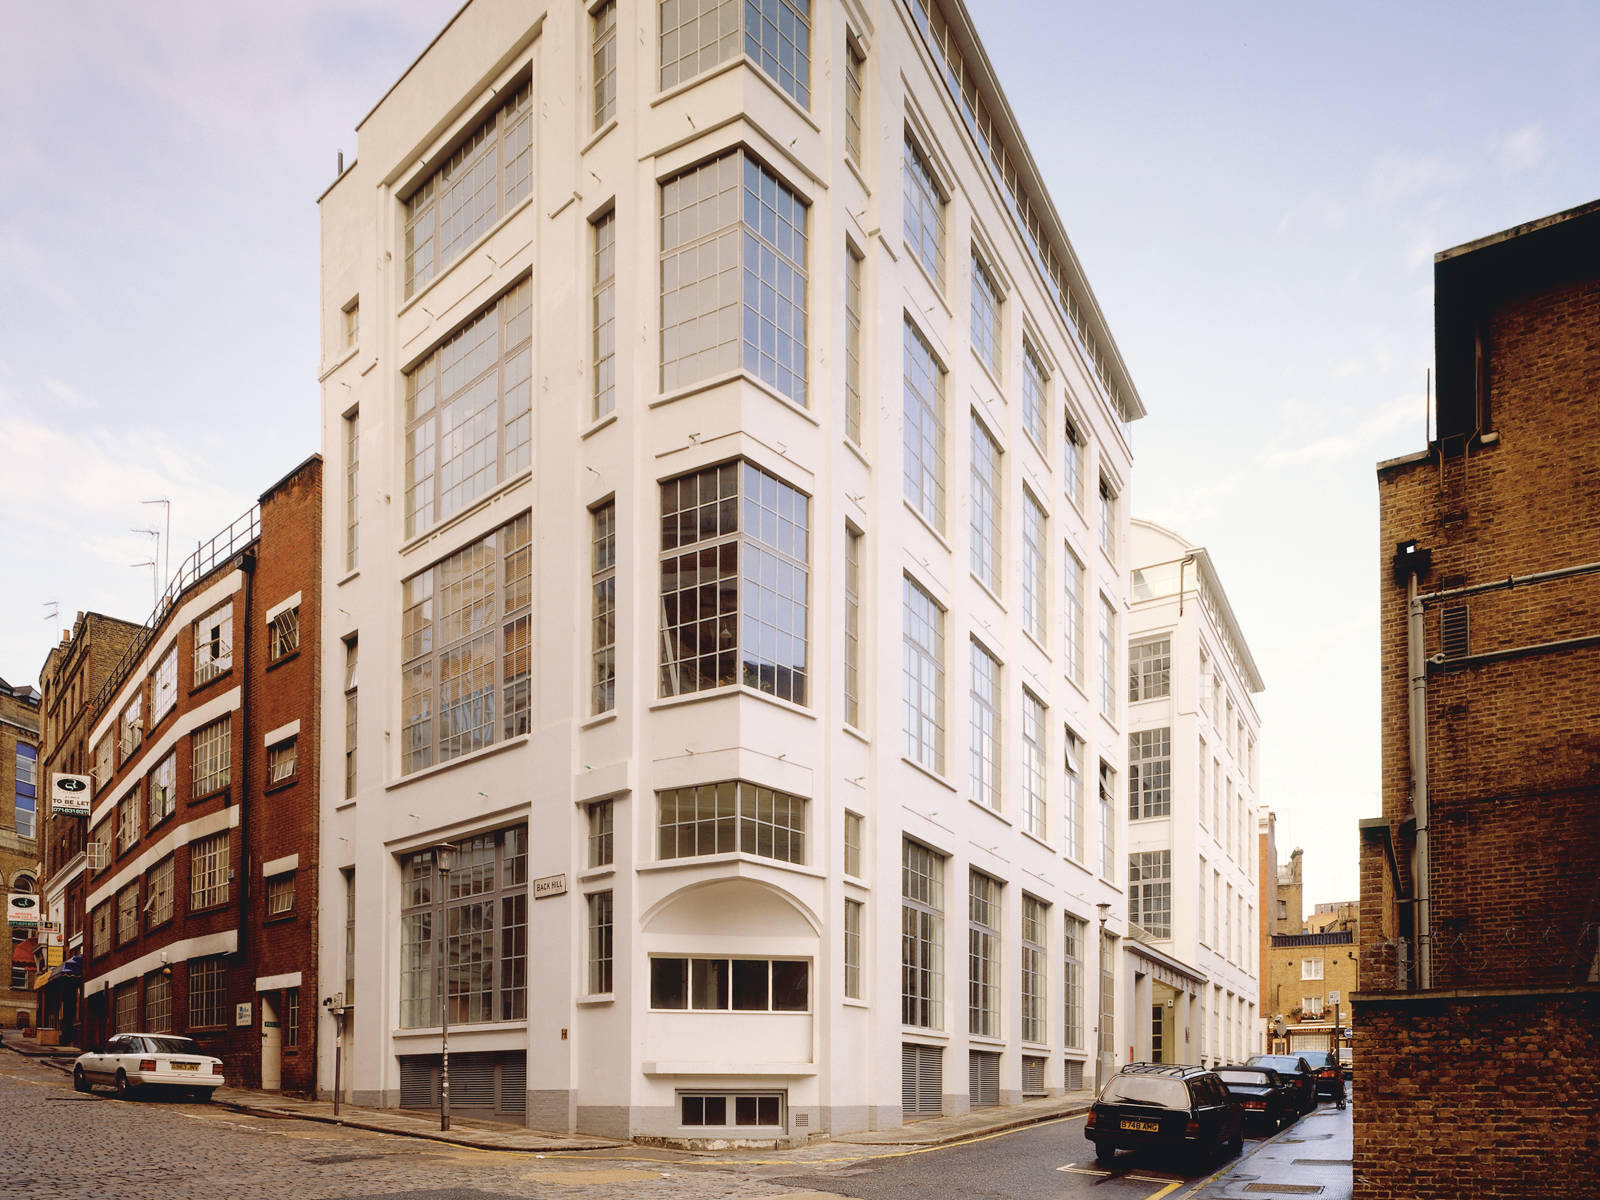 Summers Street project - Manhattan Loft Corporation's first real estate development in London